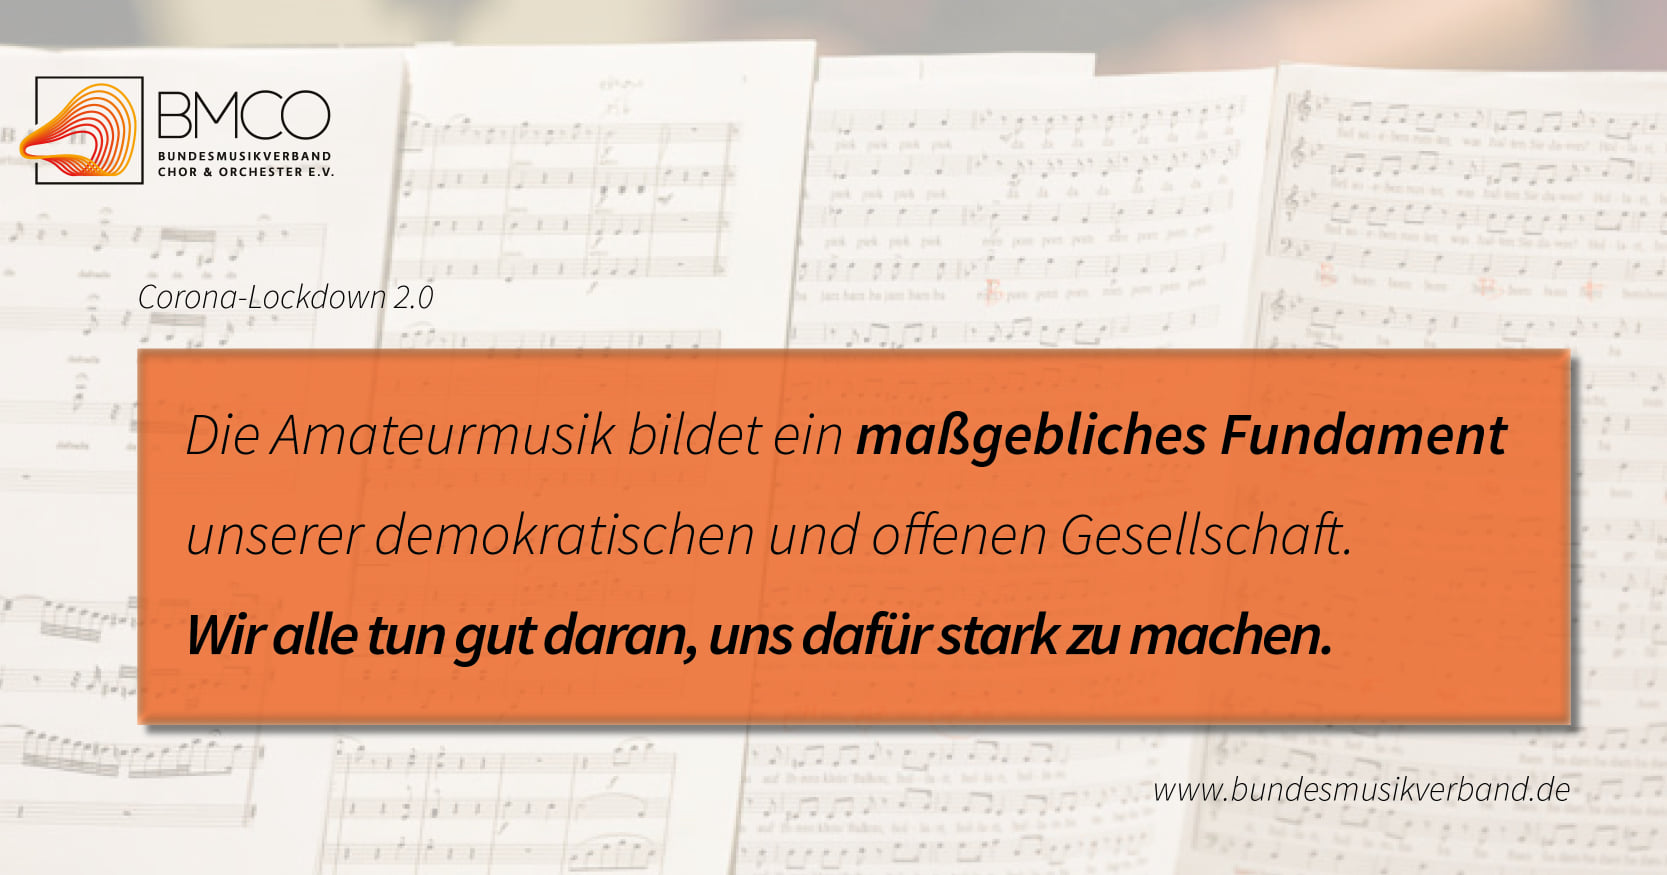 Facebook Post – Bundesmusikverband Chor & Orchester e.V.